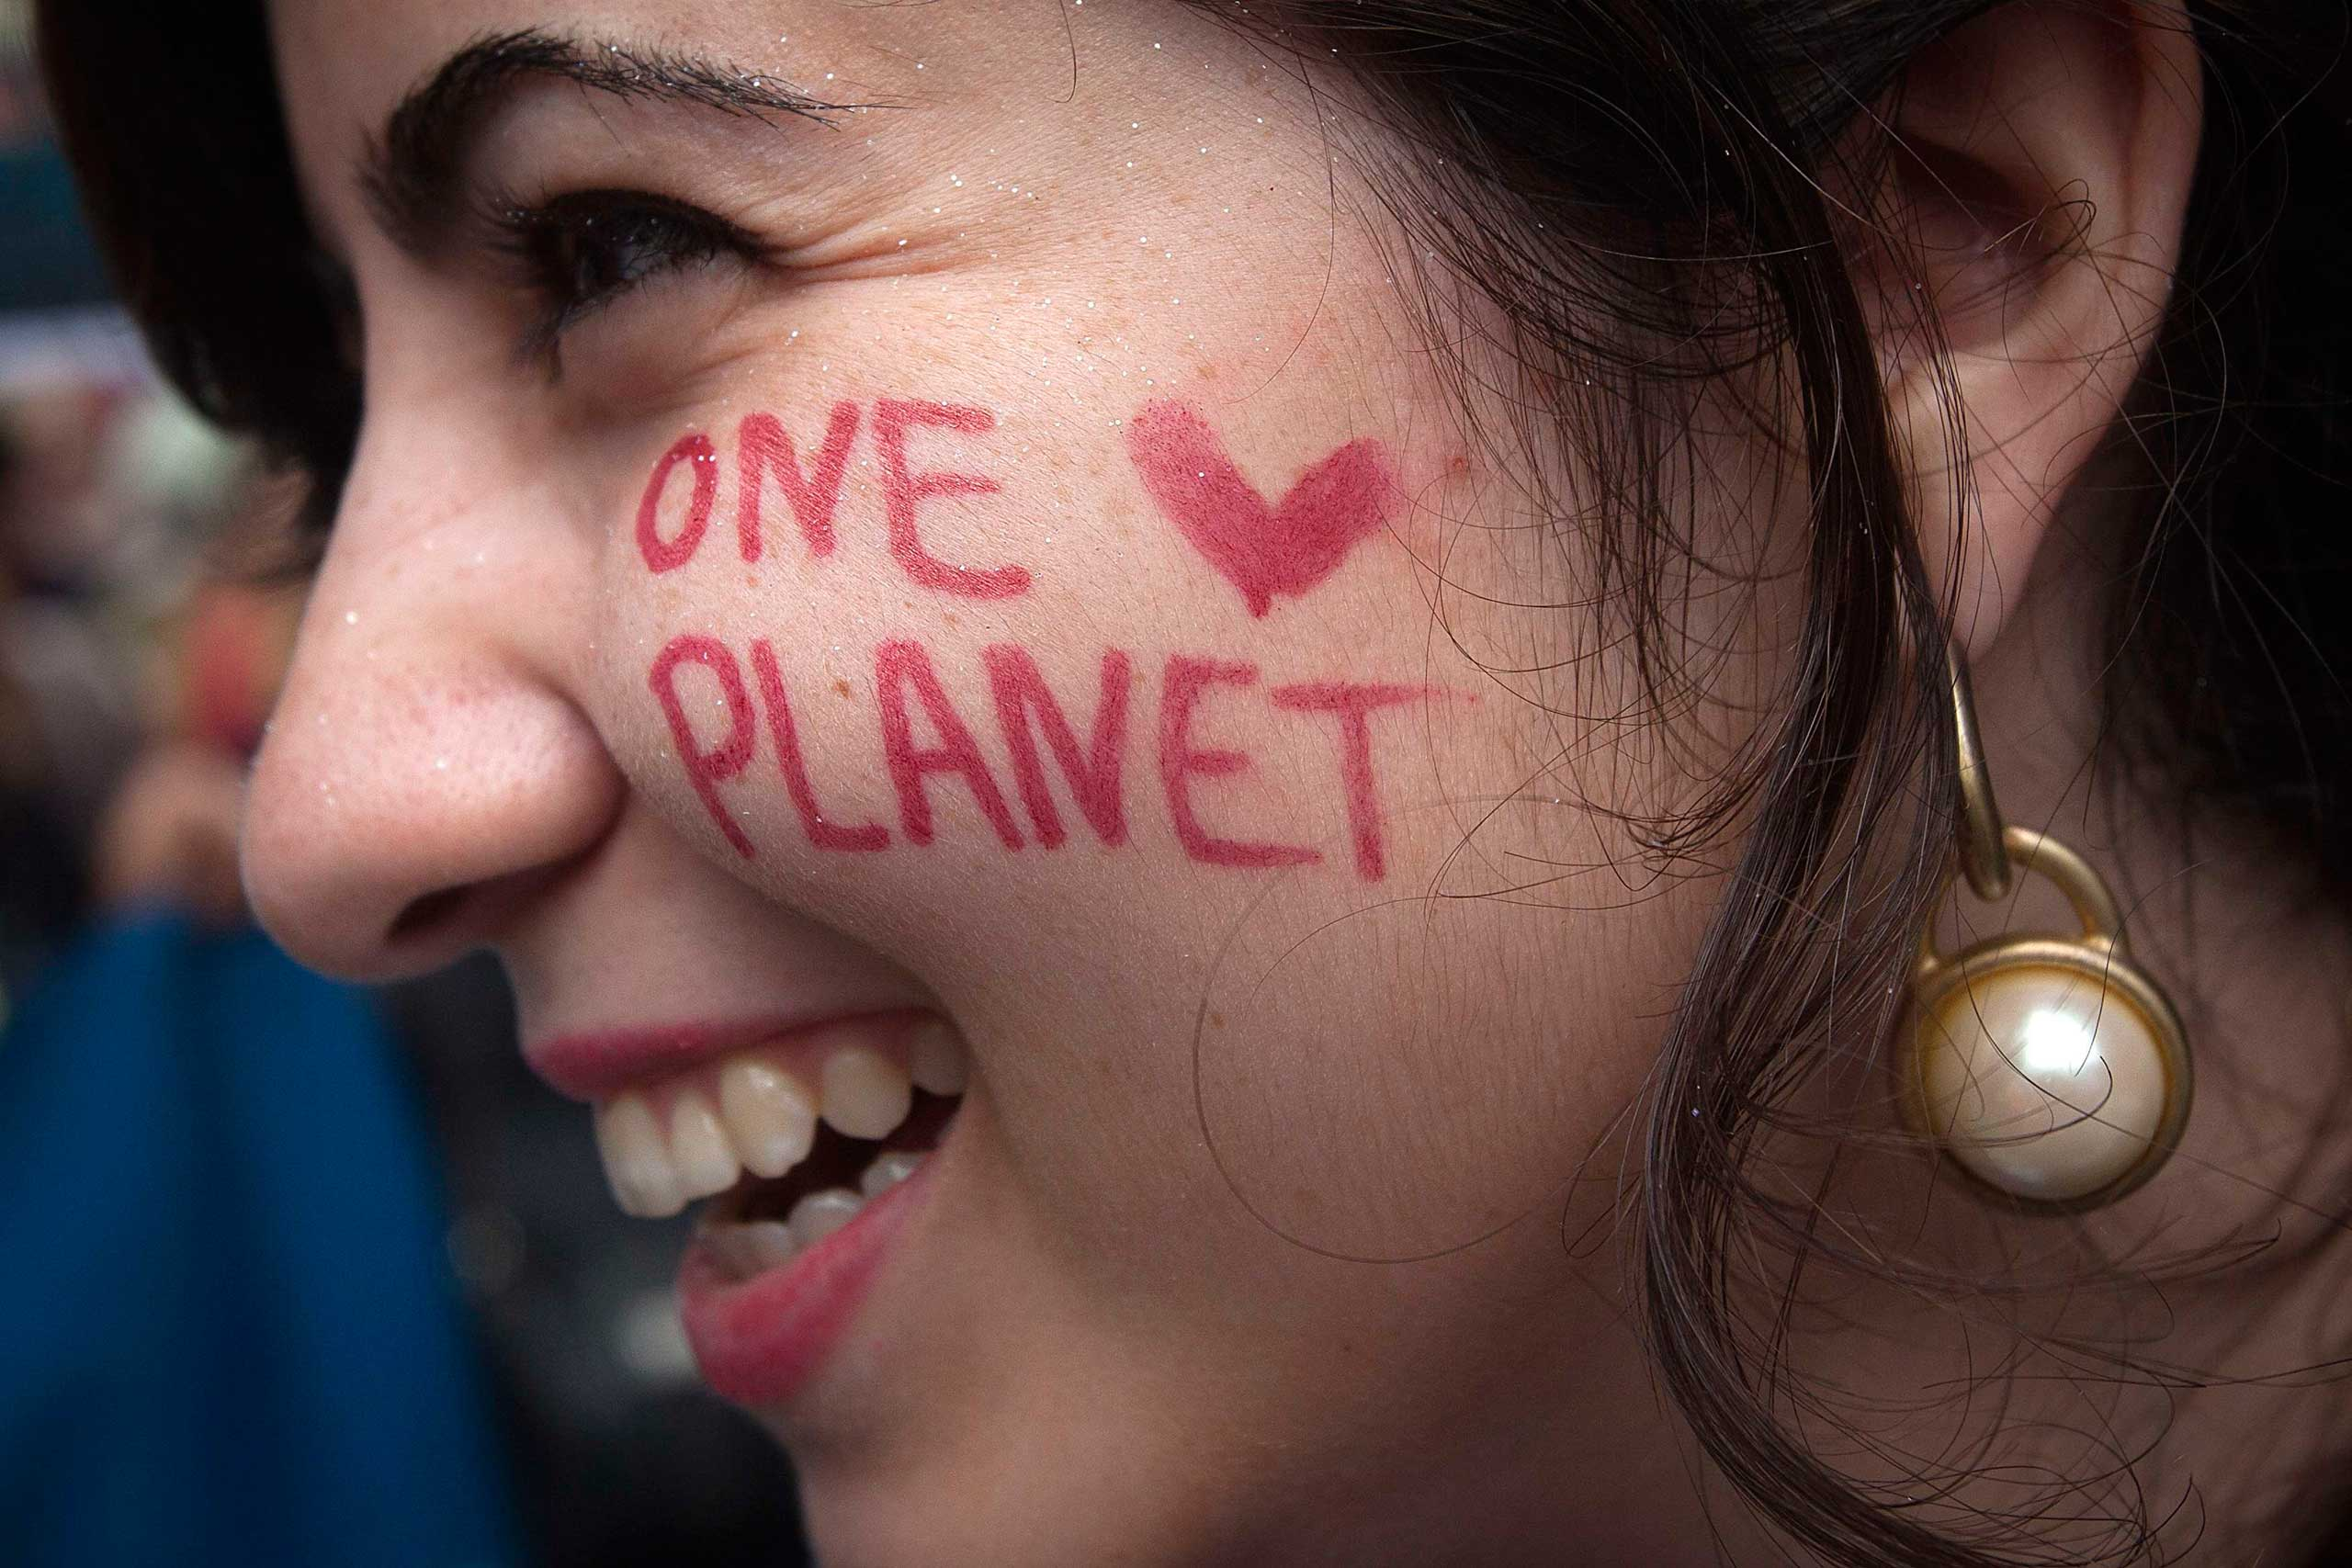 A protester with  One Planet  drawn on her face takes part in the  People's Climate March  down 6th Ave.